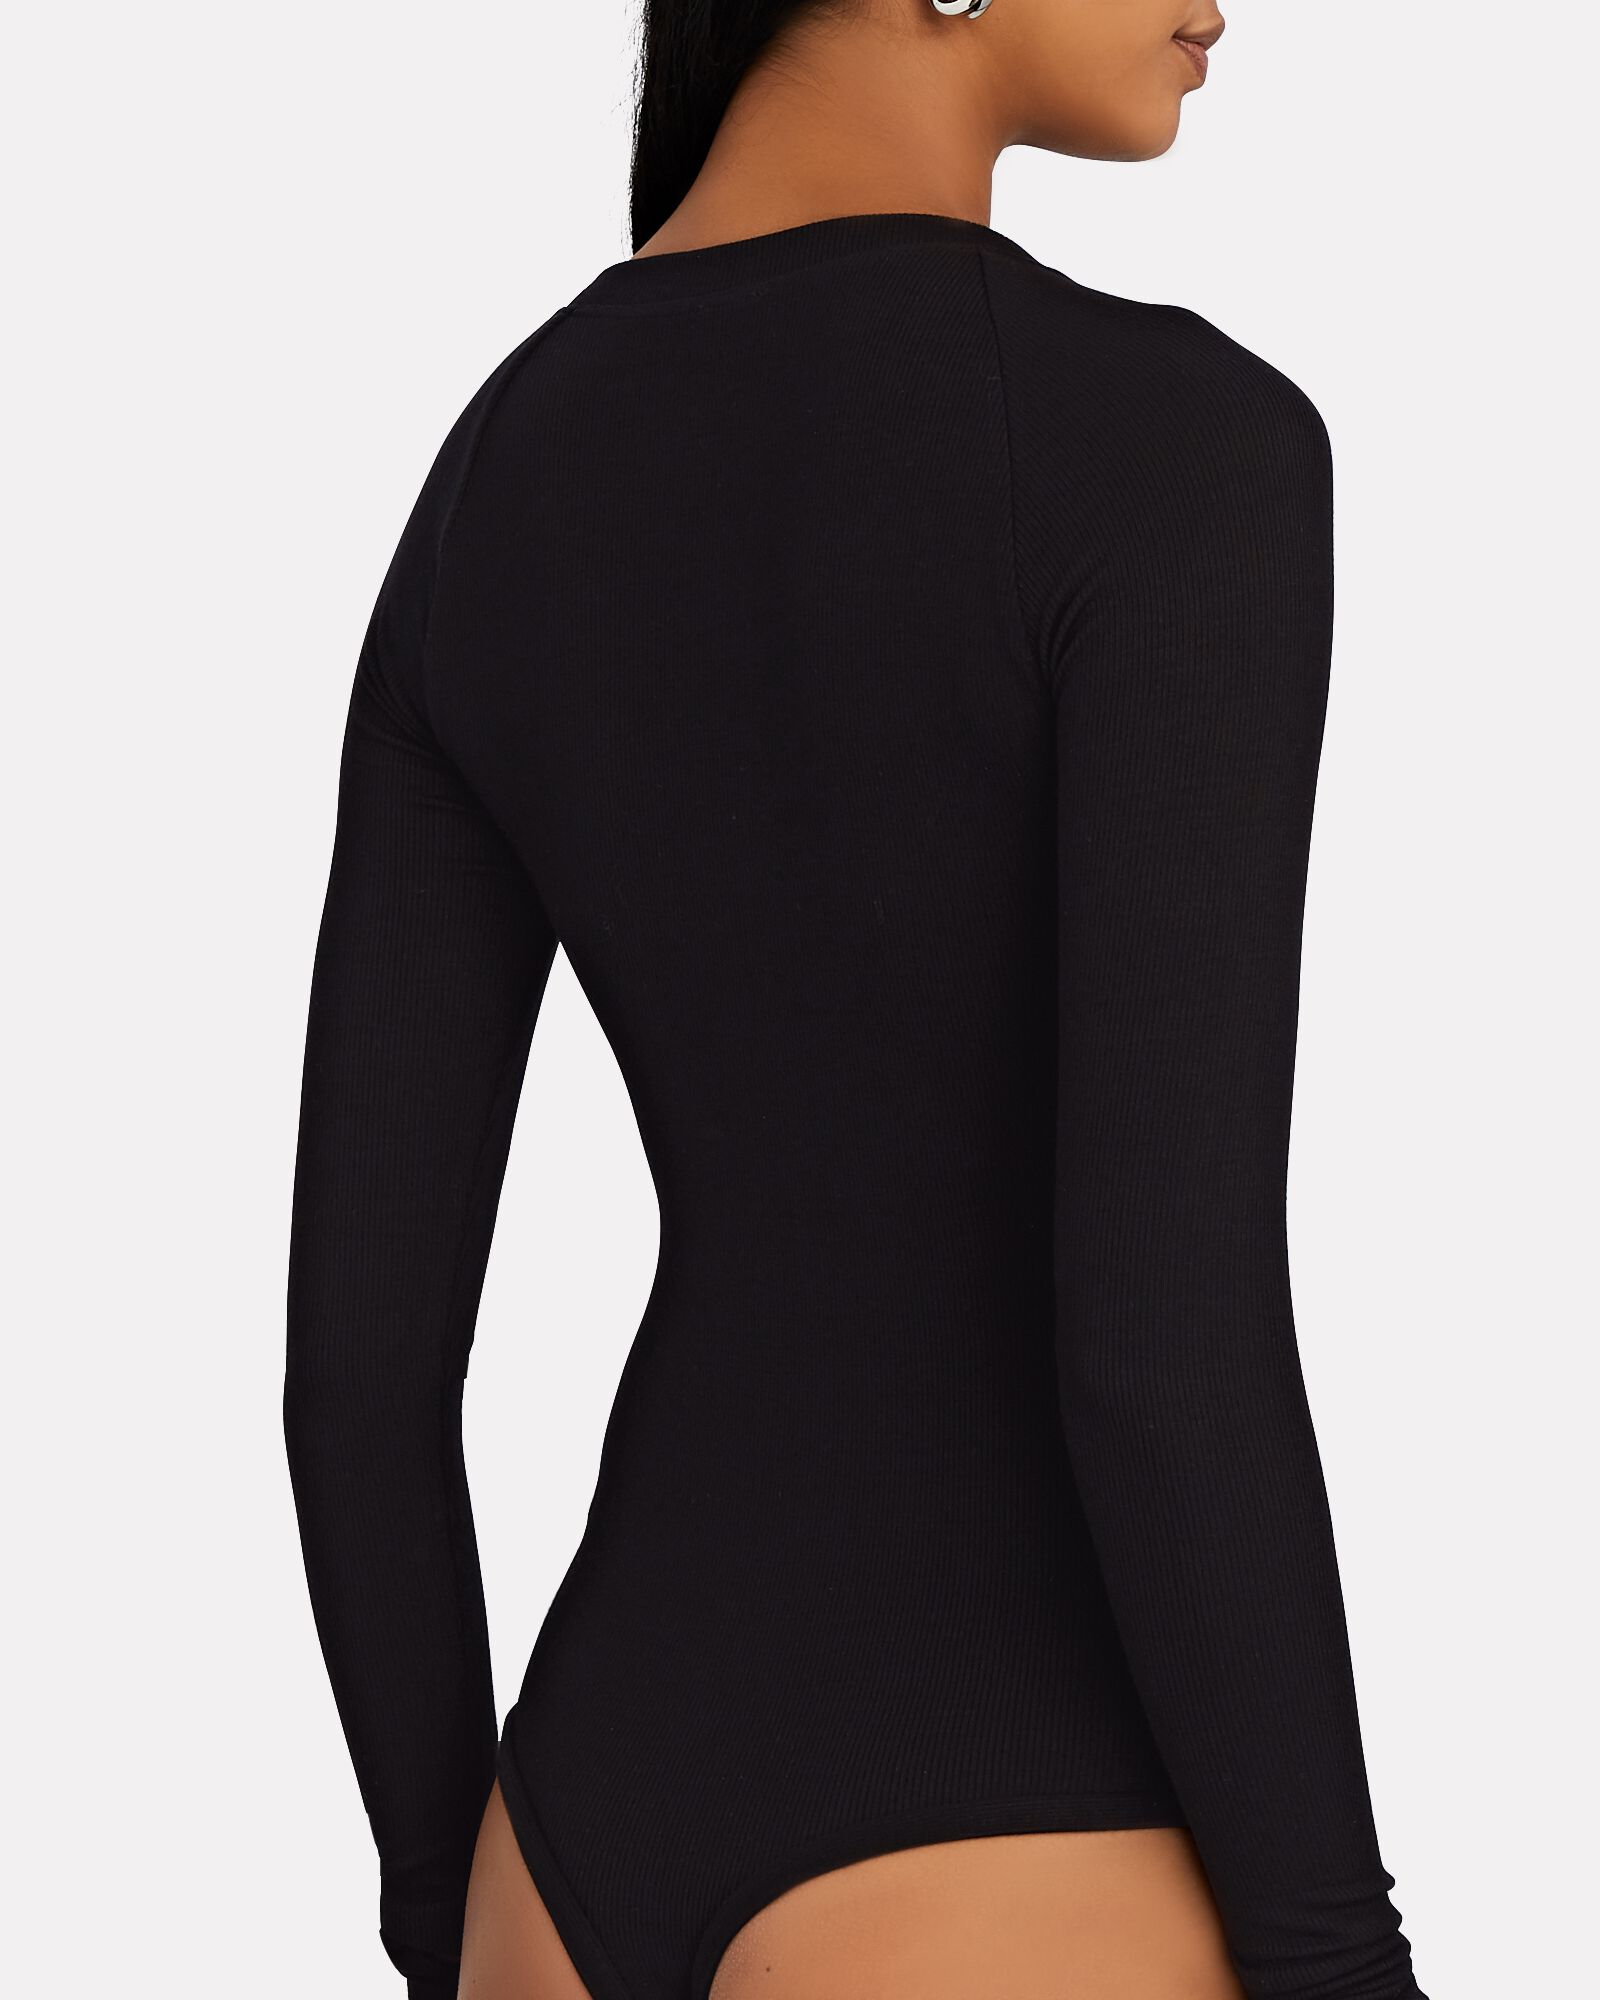 Stratton Asymmetrical Bodysuit, BLACK, hi-res